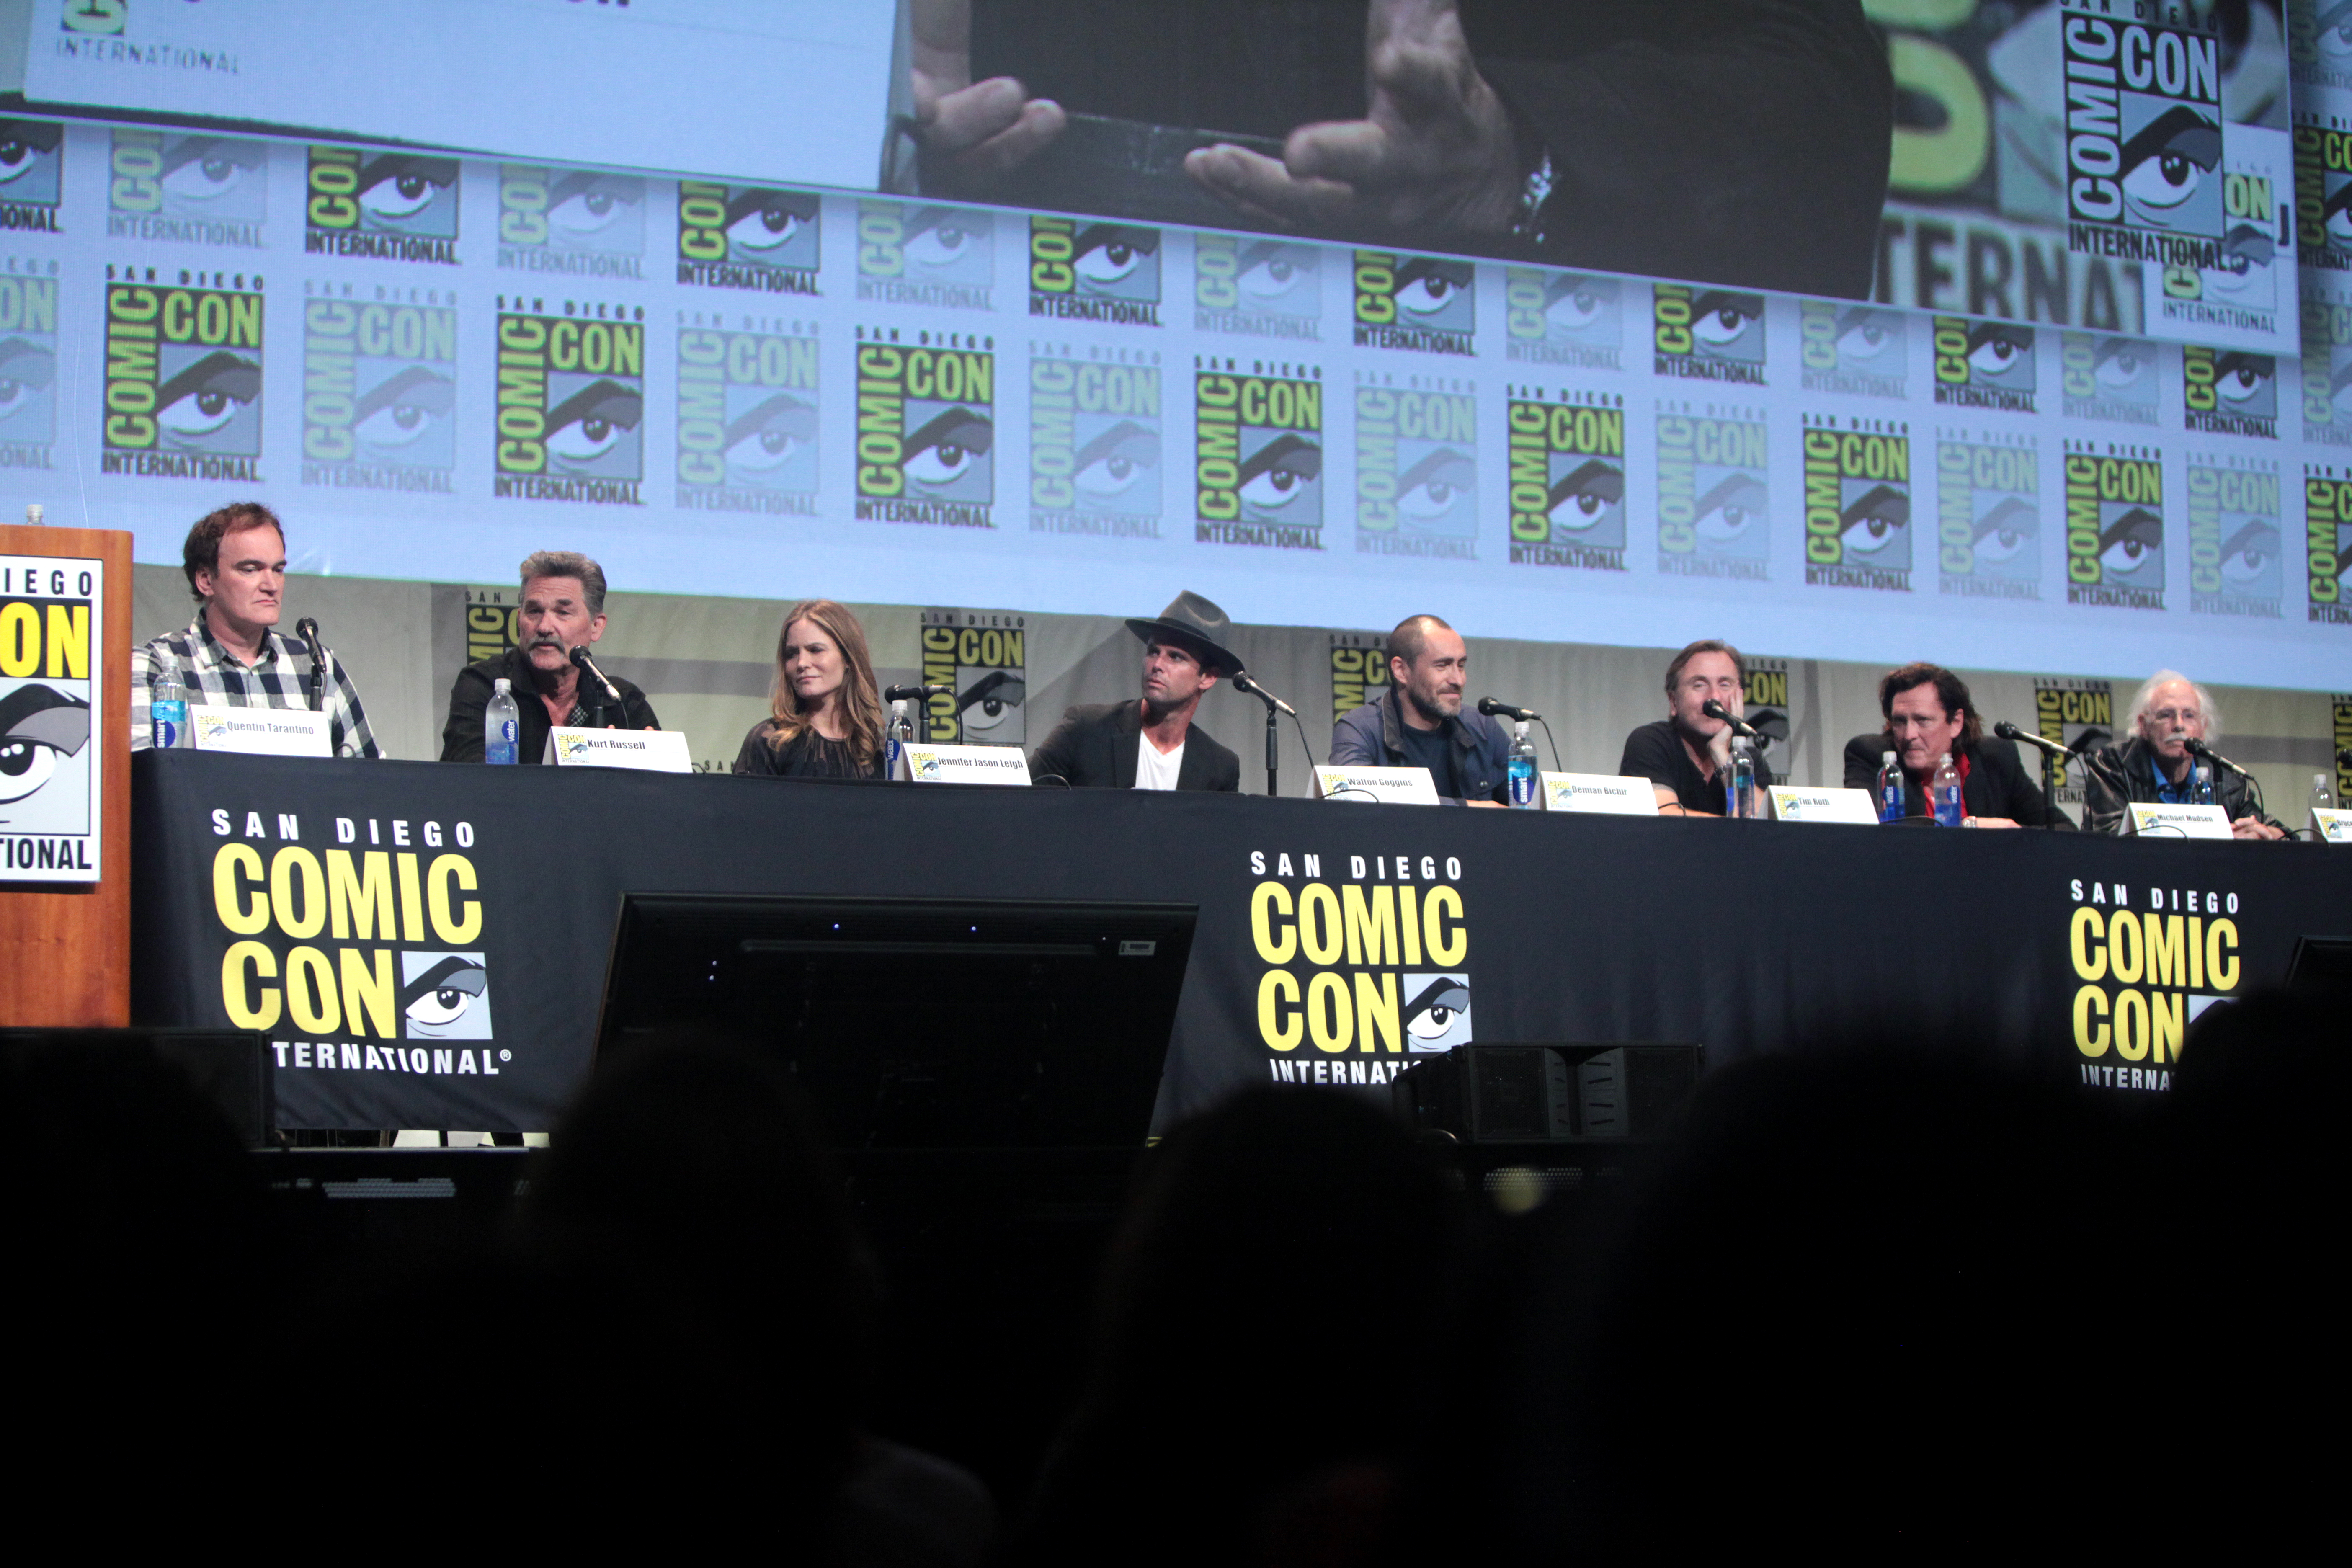 sdcc-2015-the-hateful-eight-panel-19106236384-